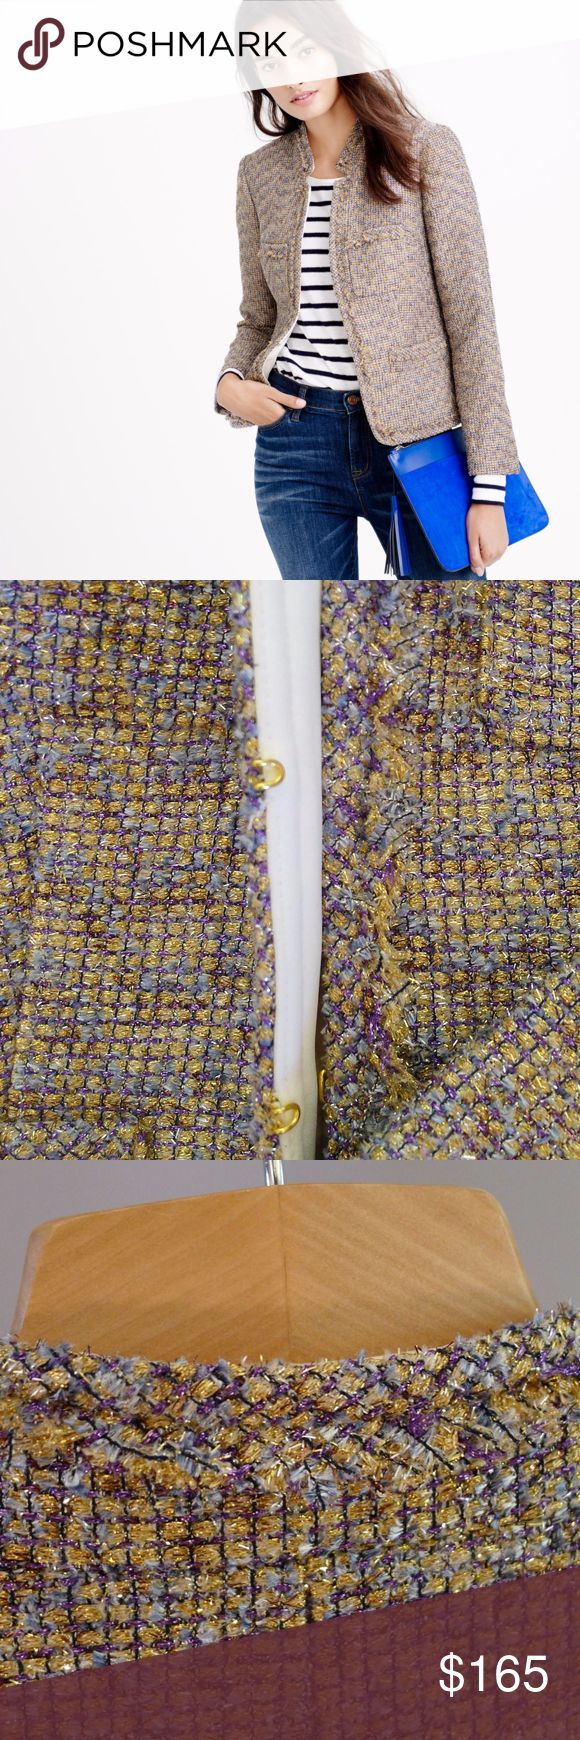 J Crew Metallic Tweed Blazer This is one of the rare J Crew stunners that never go out of style and are great for any occasion, from work and more formal gatherings to fun parties, or when you simply want to dress up your jeans. Gold, purple and baby blue metallic tweed jacket with satin beige and white lining, hook and eye closure. Classic  straight silhouette, two chest patch pockets and two waist besom pockets with a fringe trim, stand-up collar inverted notch with fringe trim. 72%…